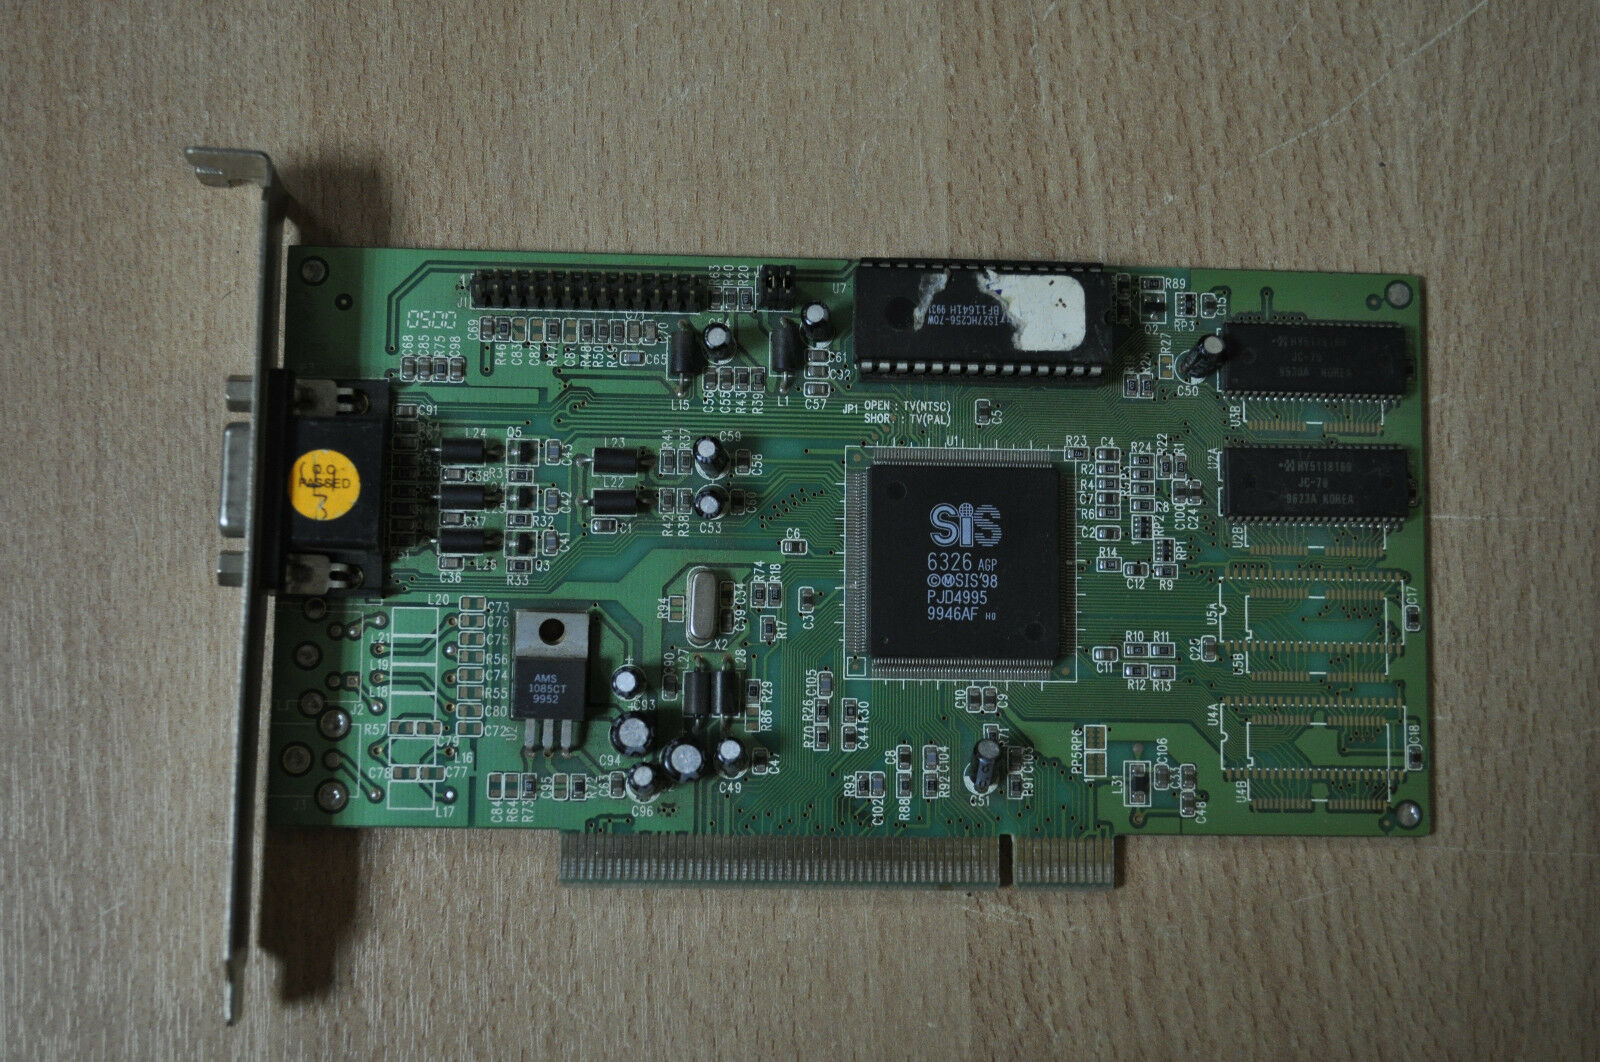 SiS 6326 PCI Video Card, PCI-6326-1-4MB GRAPHICS ADAPTER SIS'98 PJD4995 Working